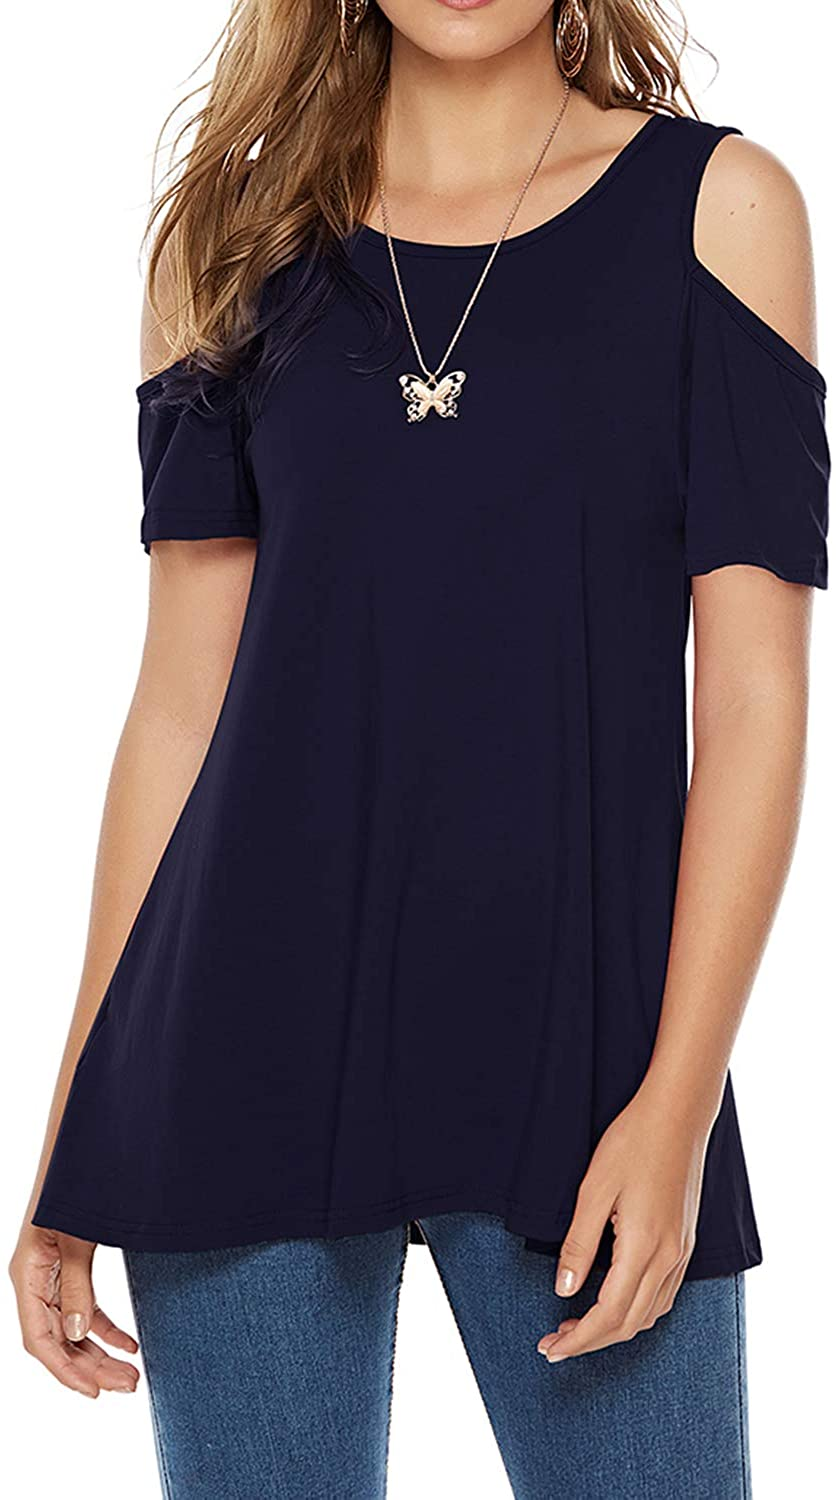 CEASIKERY Women's Casual Cold Shoulder Tunic Tops Loose Blouse Short Sleeve Shirts